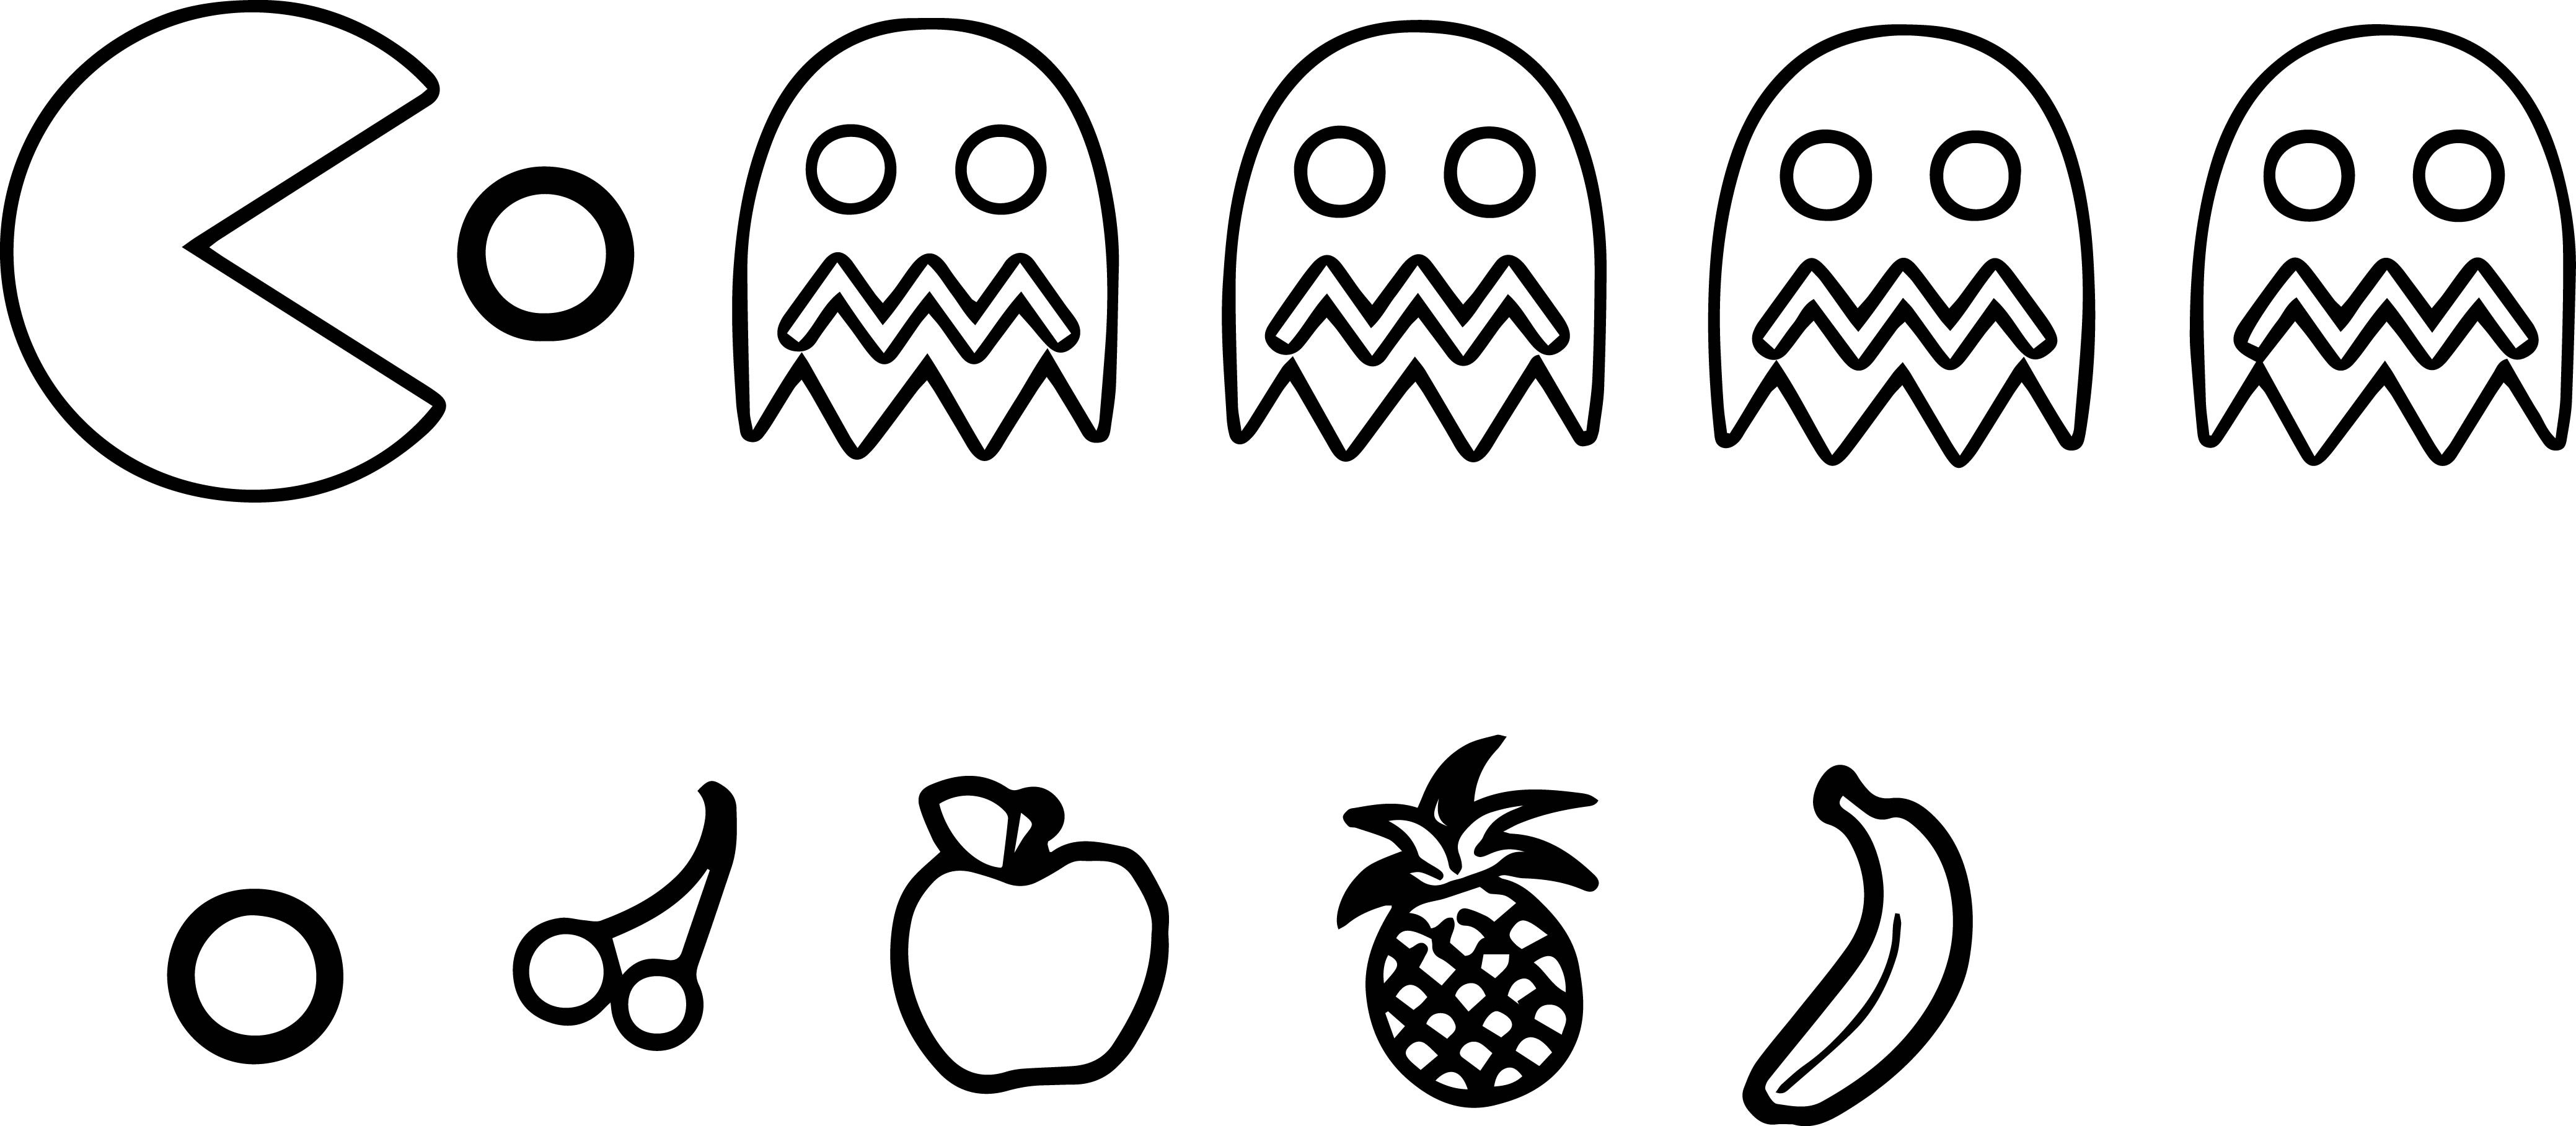 Pac Man Coloring Pages to Print  Printable 14d - Free For kids